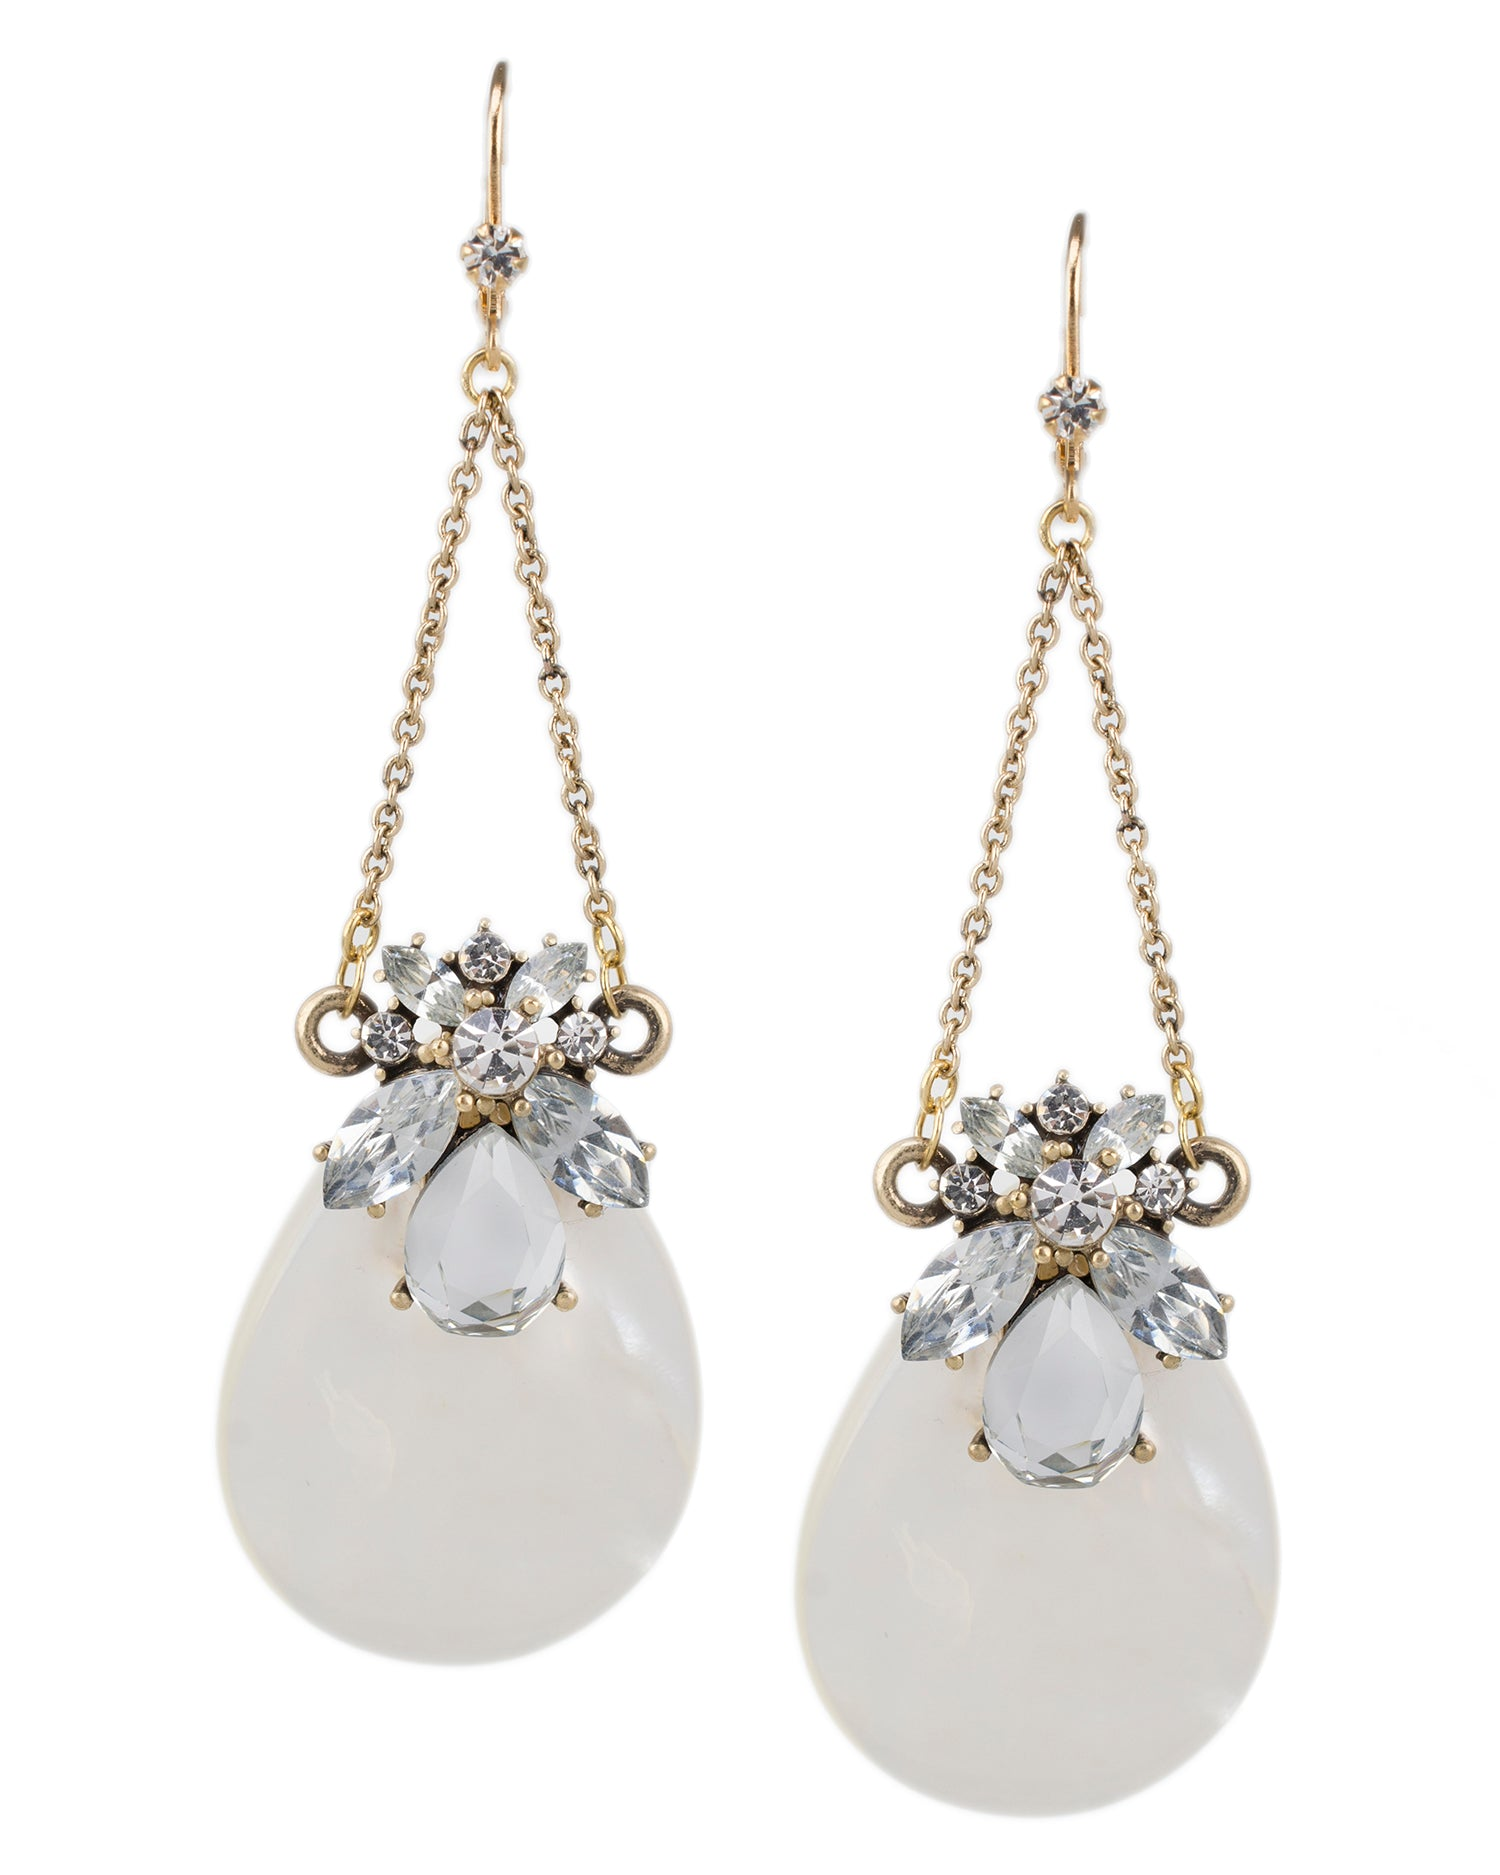 Mother of Pearl and Crystal Cluster Earrings